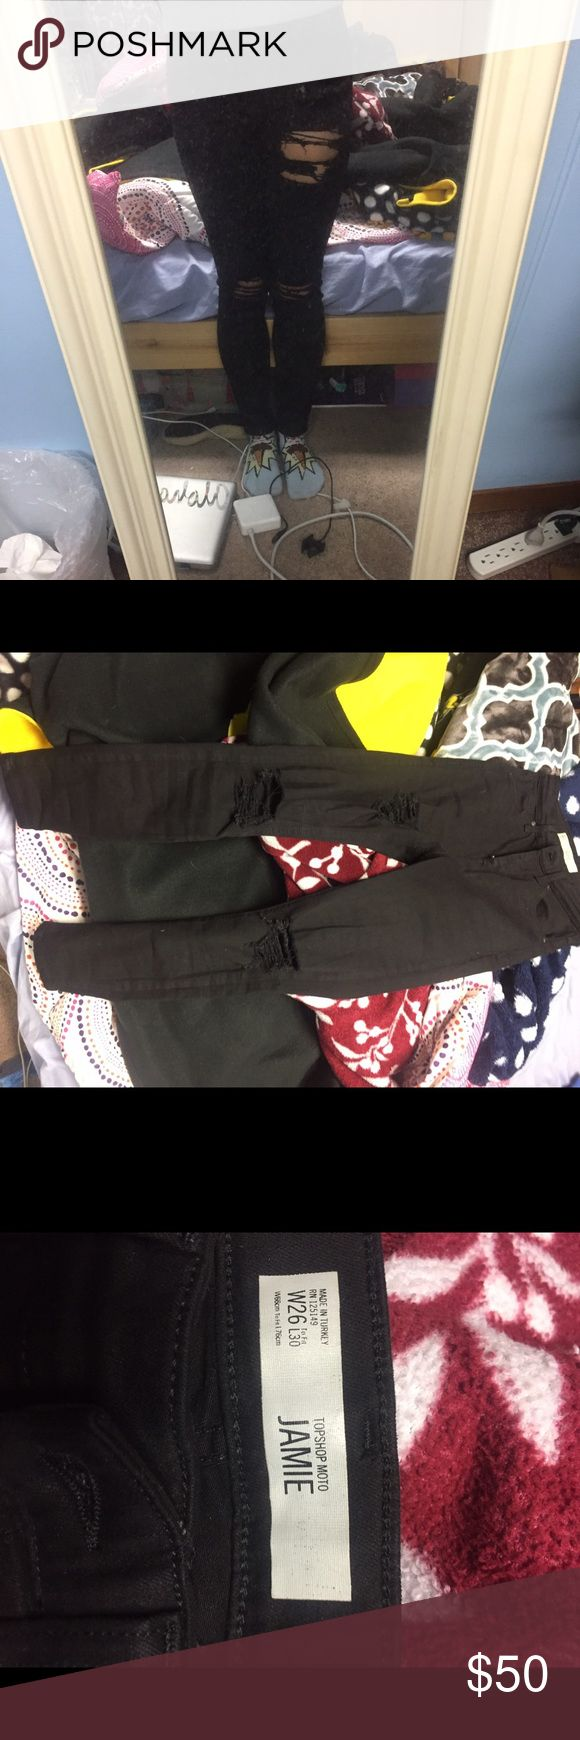 Topshop distressed black jeans Worn once. Size 26/30. Can get in the store still for $80. TRYING TO GET RID OF THESE FAST! Topshop Pants Skinny